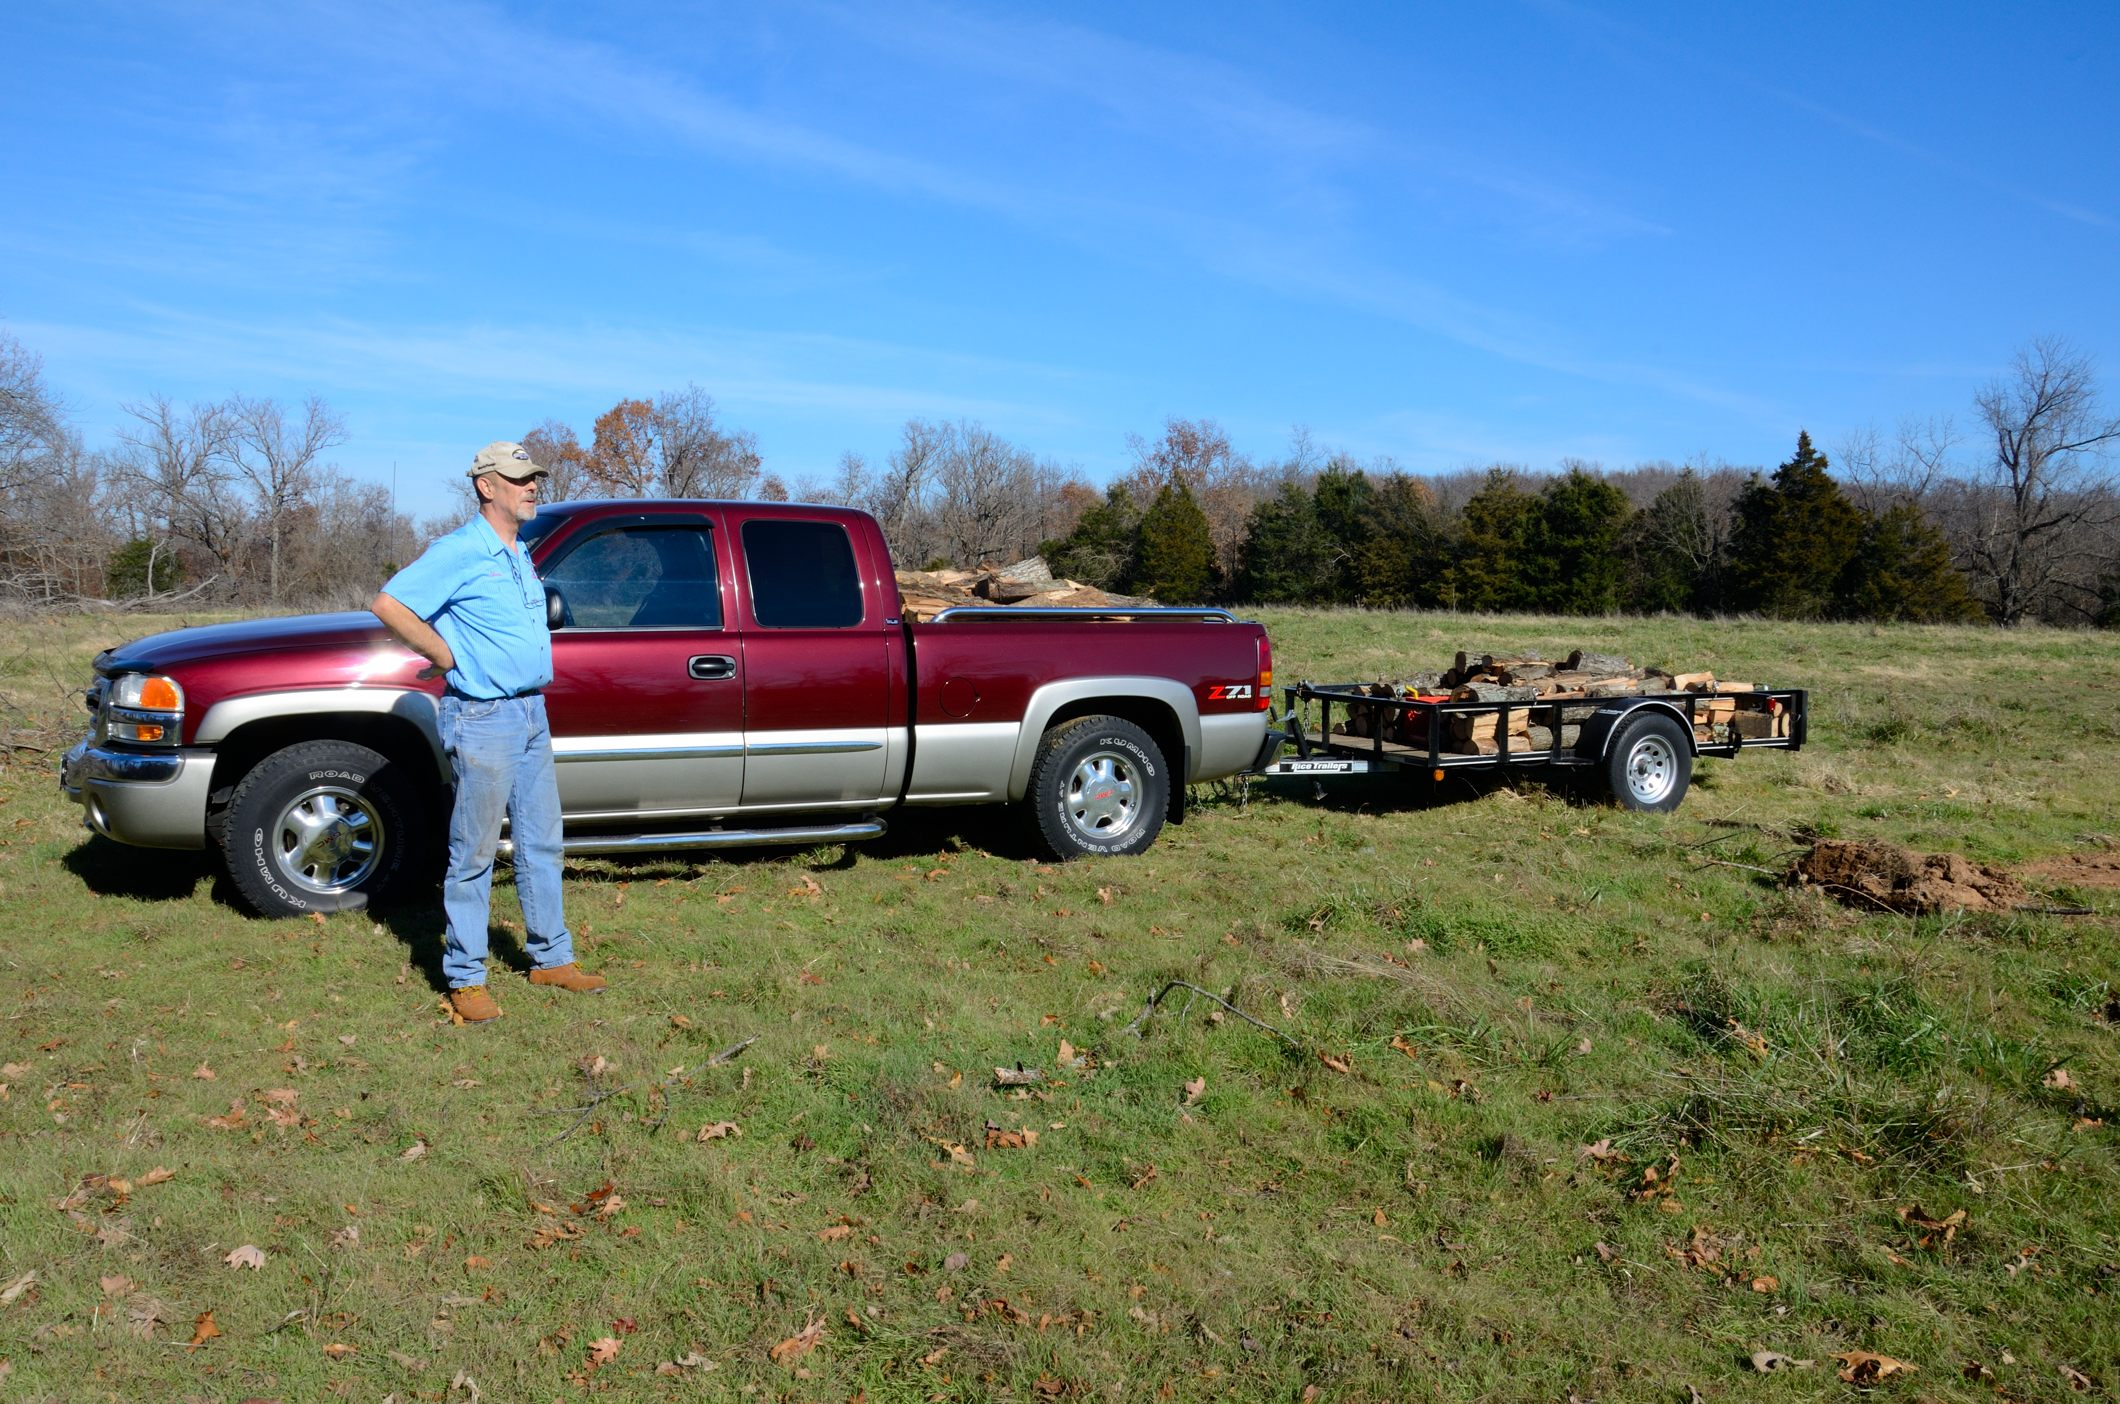 Tom, pick-up, trailer, and a good morning's work